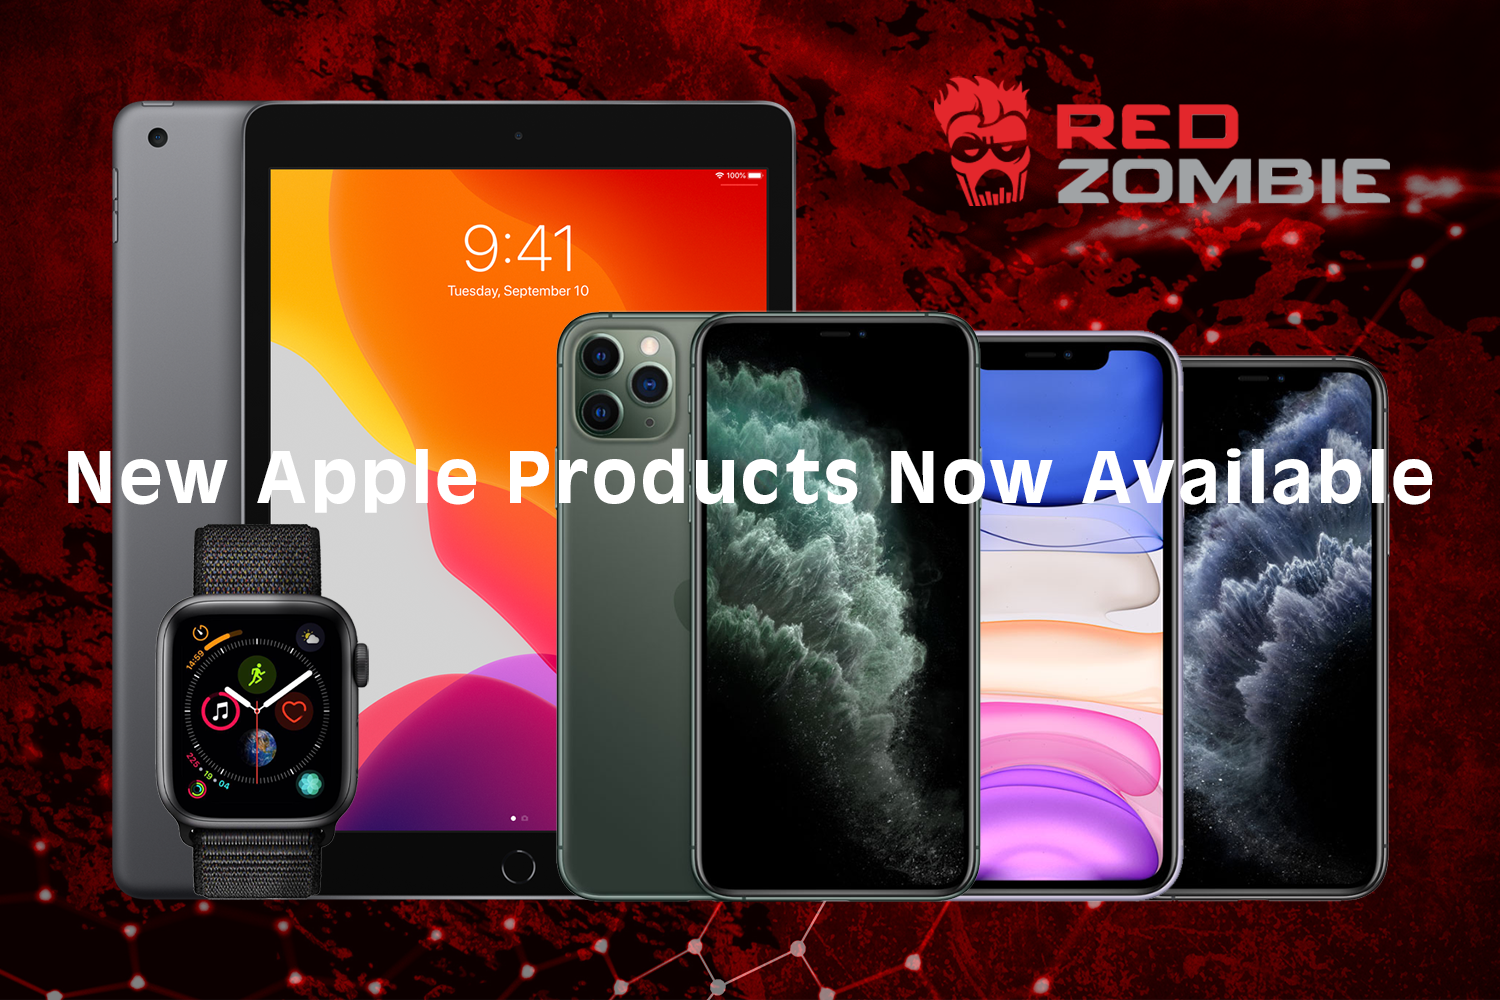 2019 Apple products available from Red Zombie